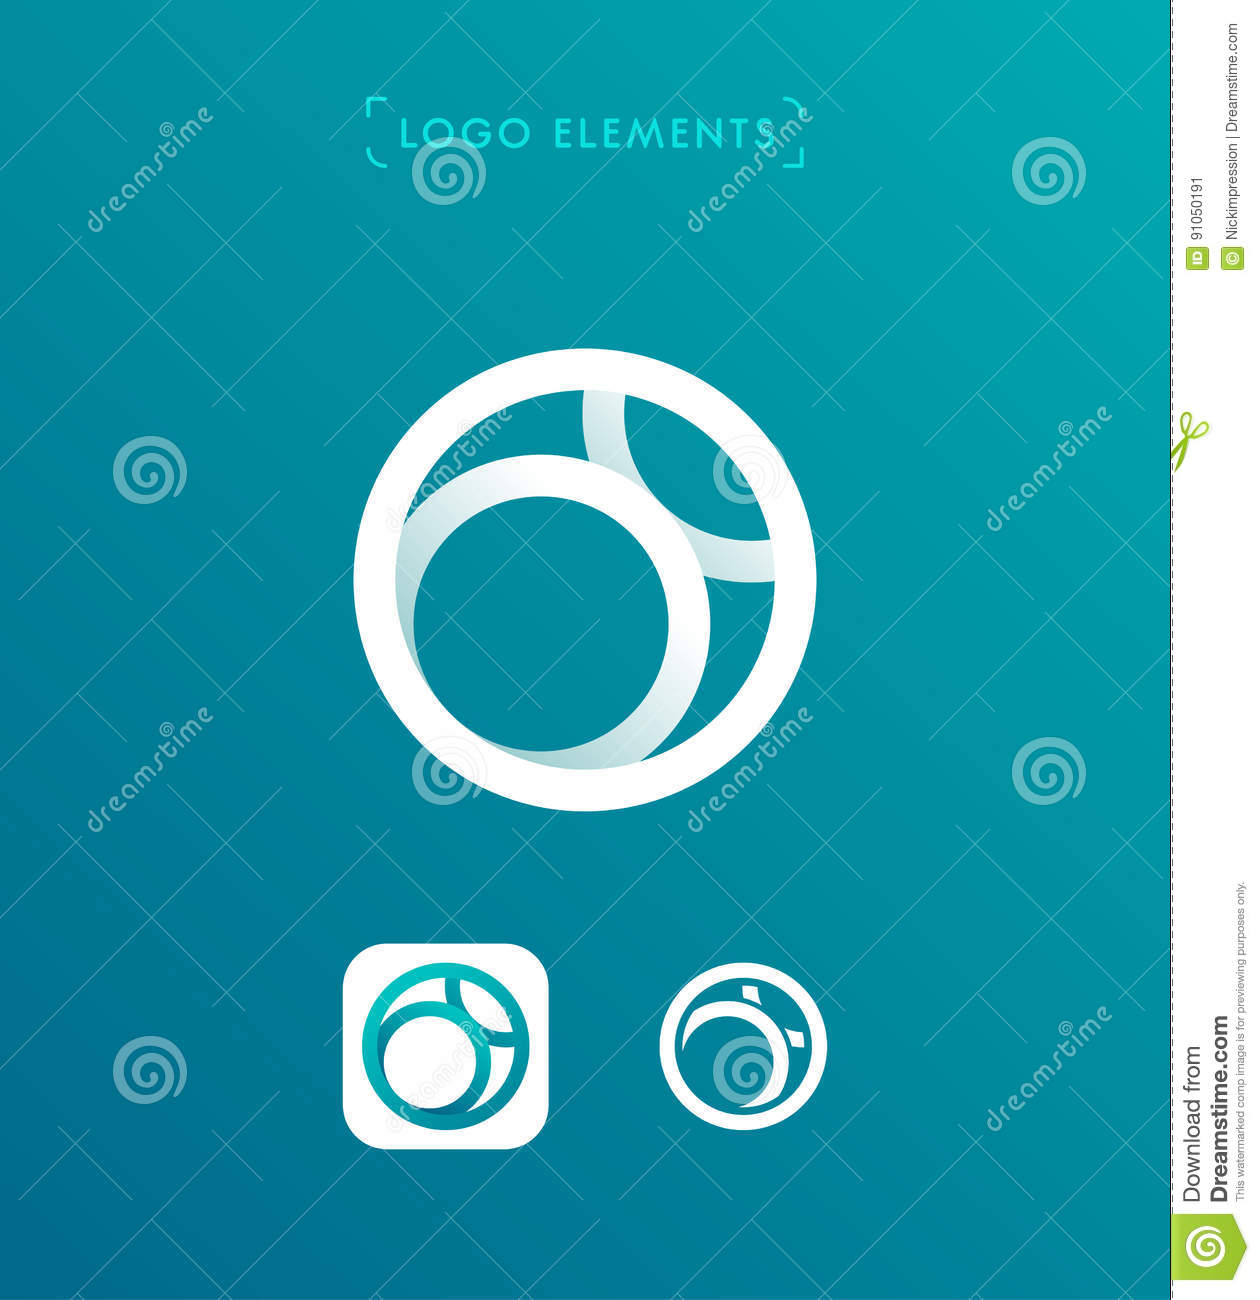 Abstract Letter O Origami Style Logo Template. Circle